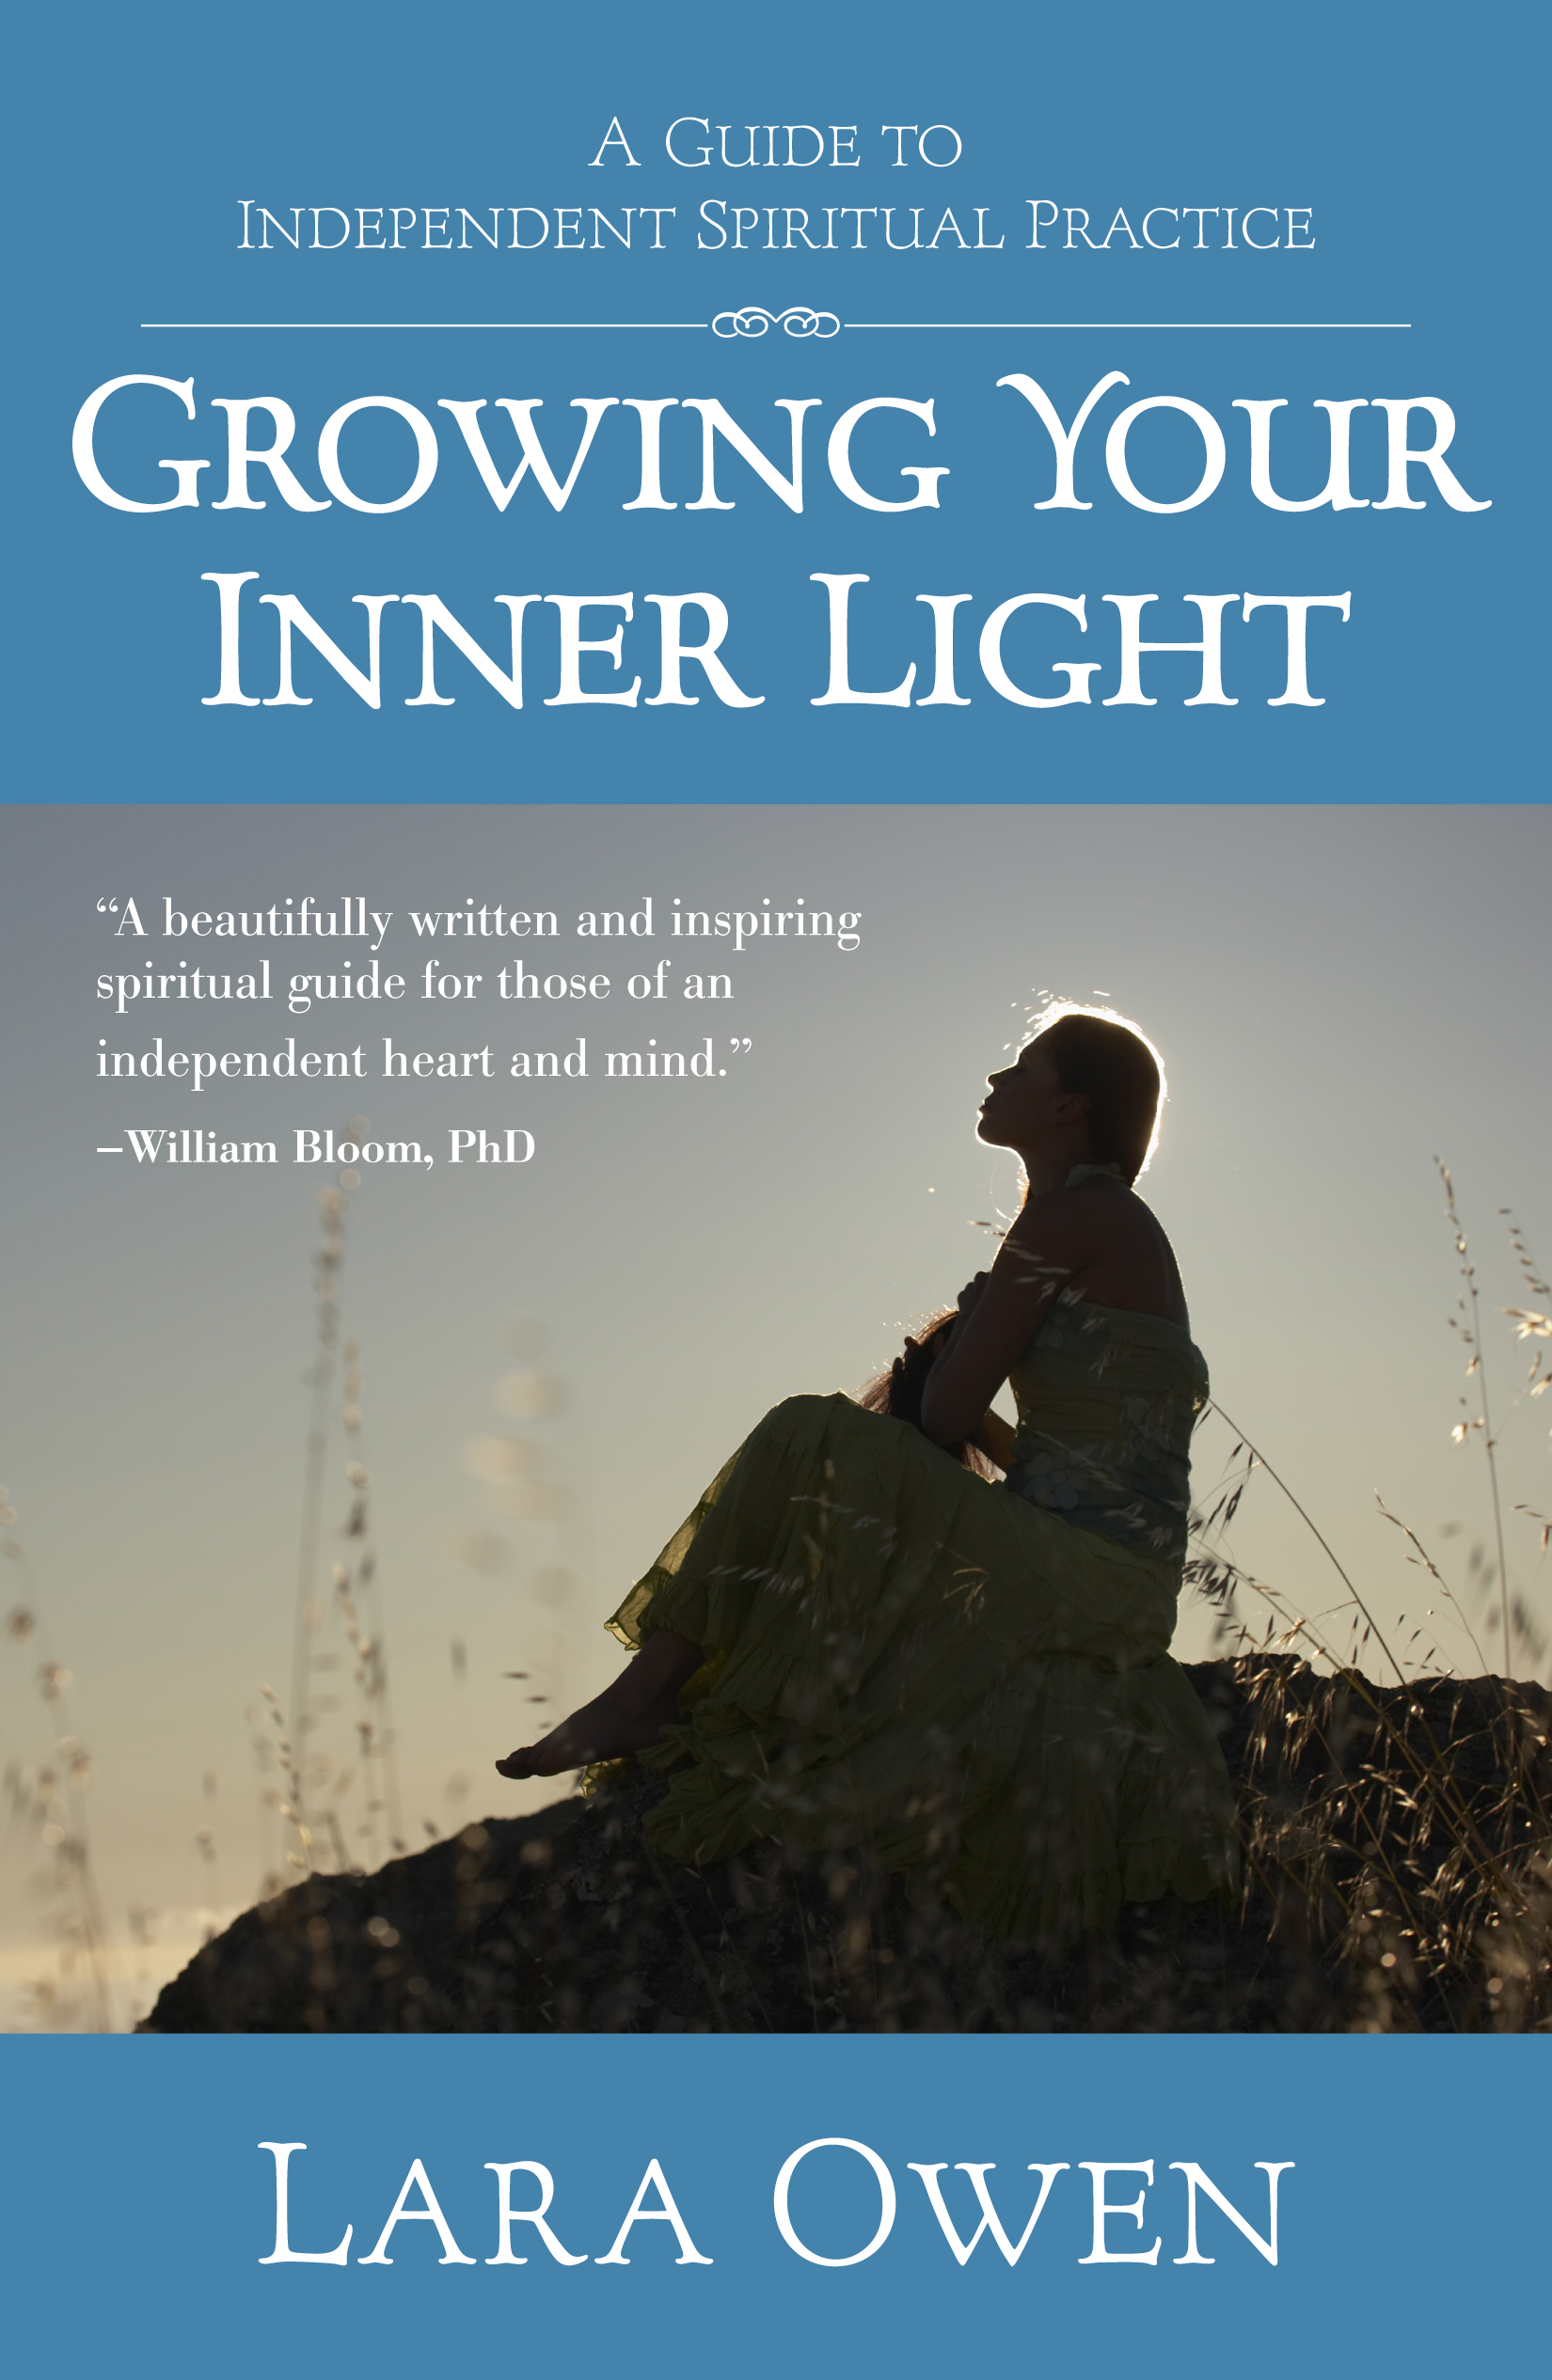 Book Cover Image (jpg): Growing Your Inner Light